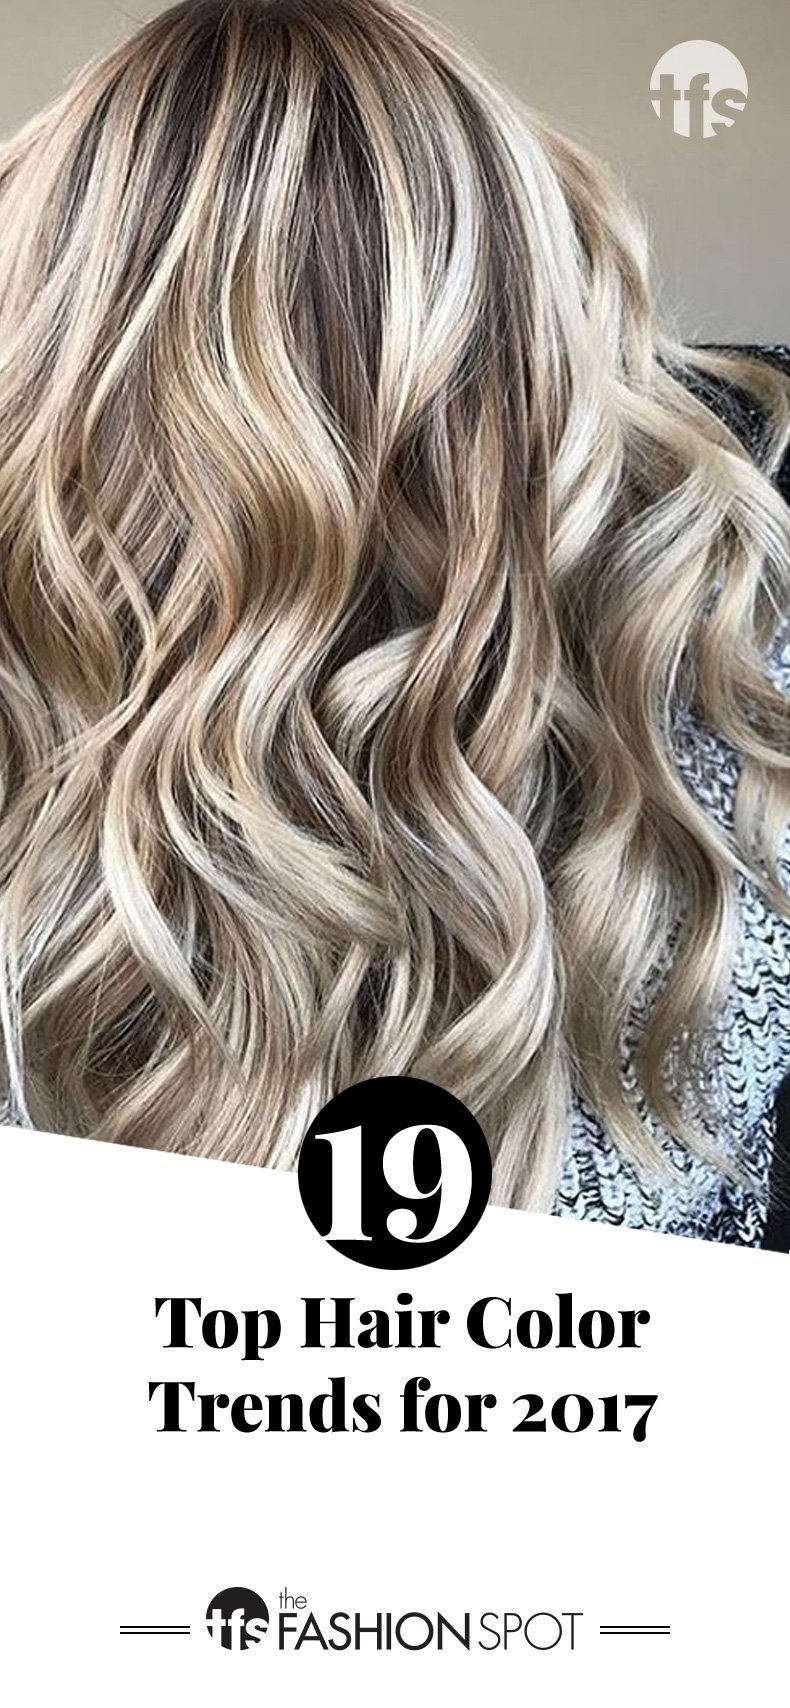 The Best Most Popular Hair Color Trends 2017 Top Hair Stylists Pictures